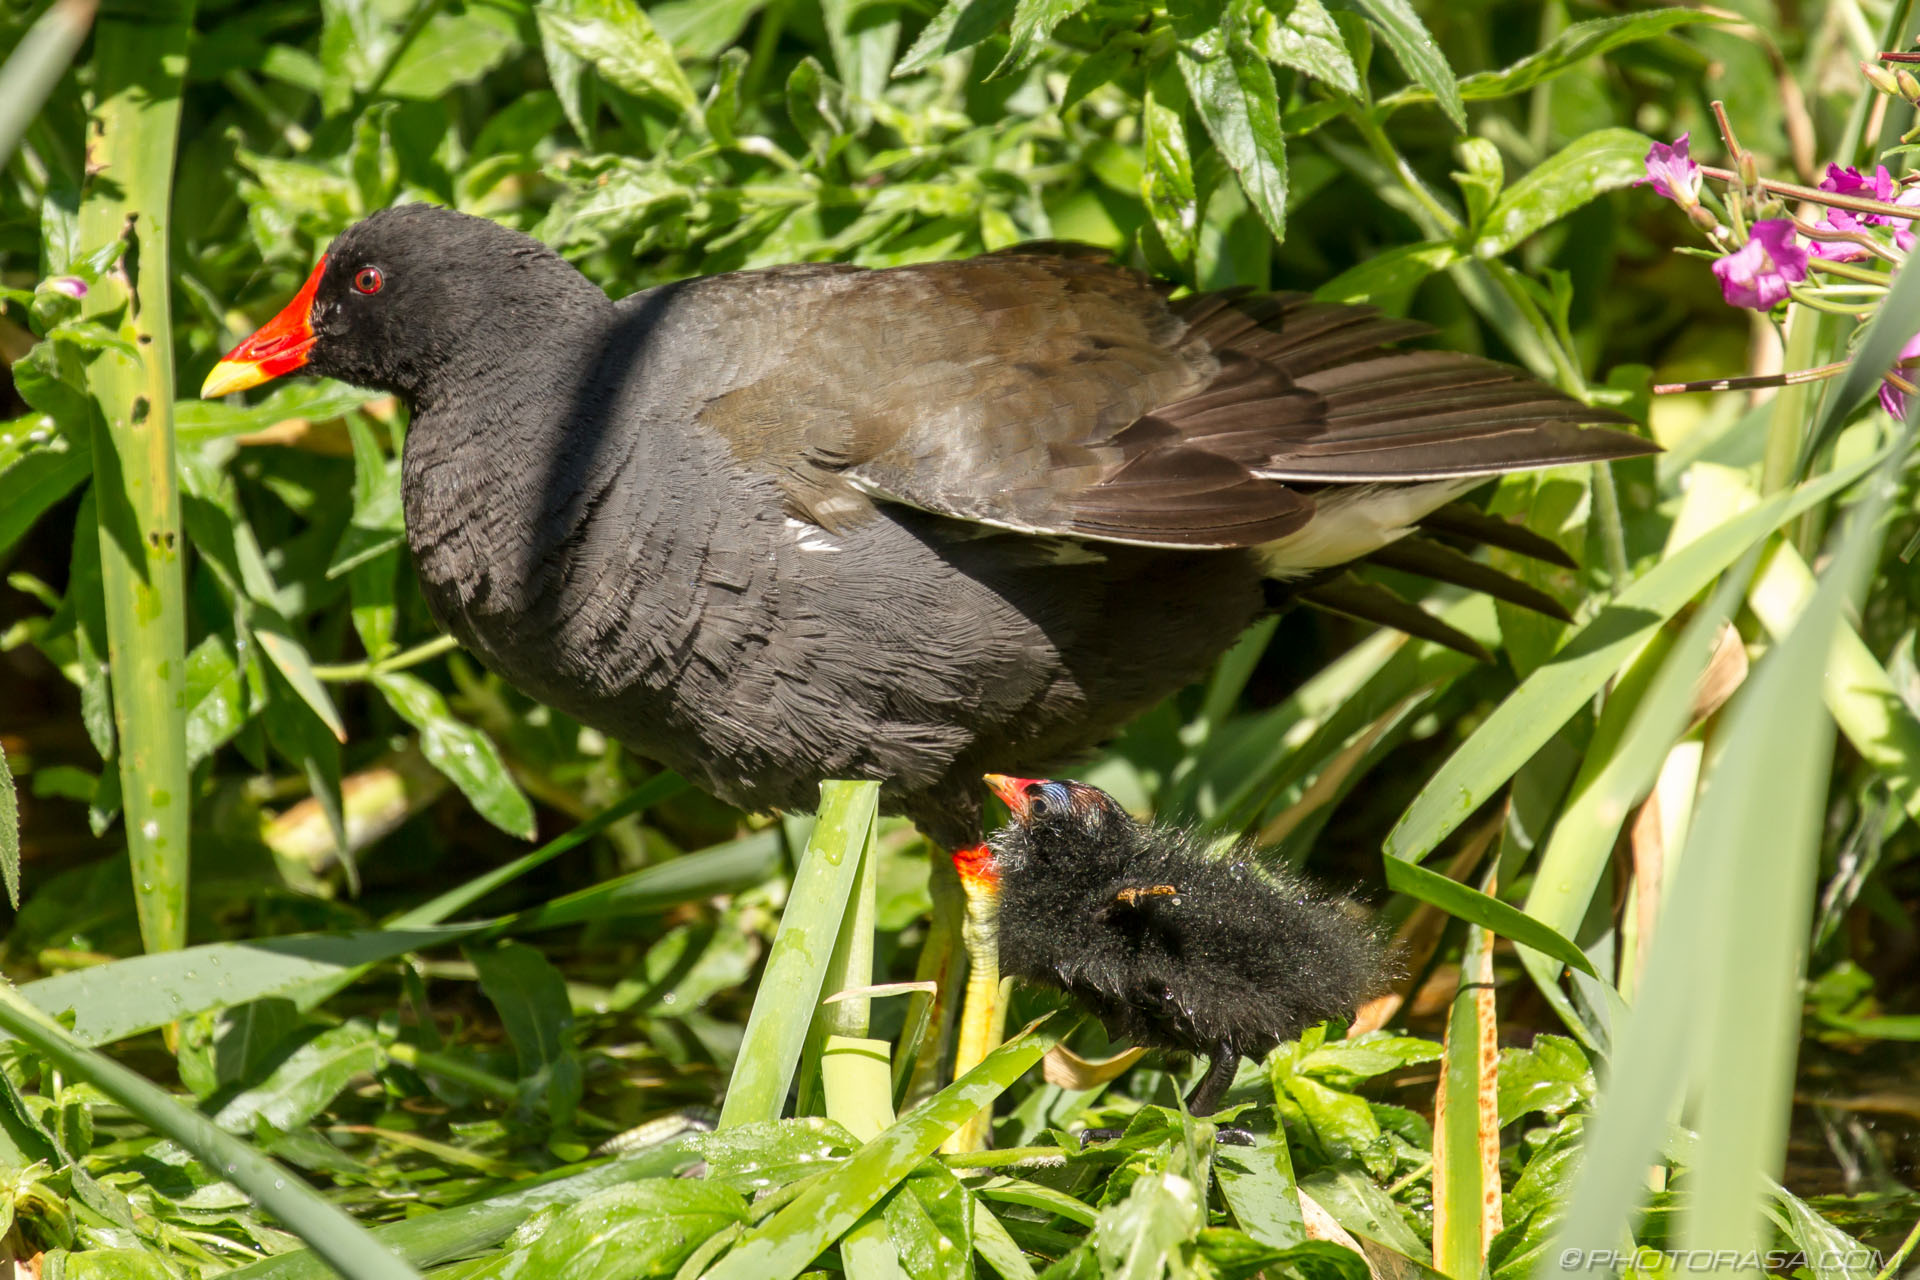 http://photorasa.com/baby-moorhen-and-mother/moorhen-chick-and-mother-in-the-foliage/